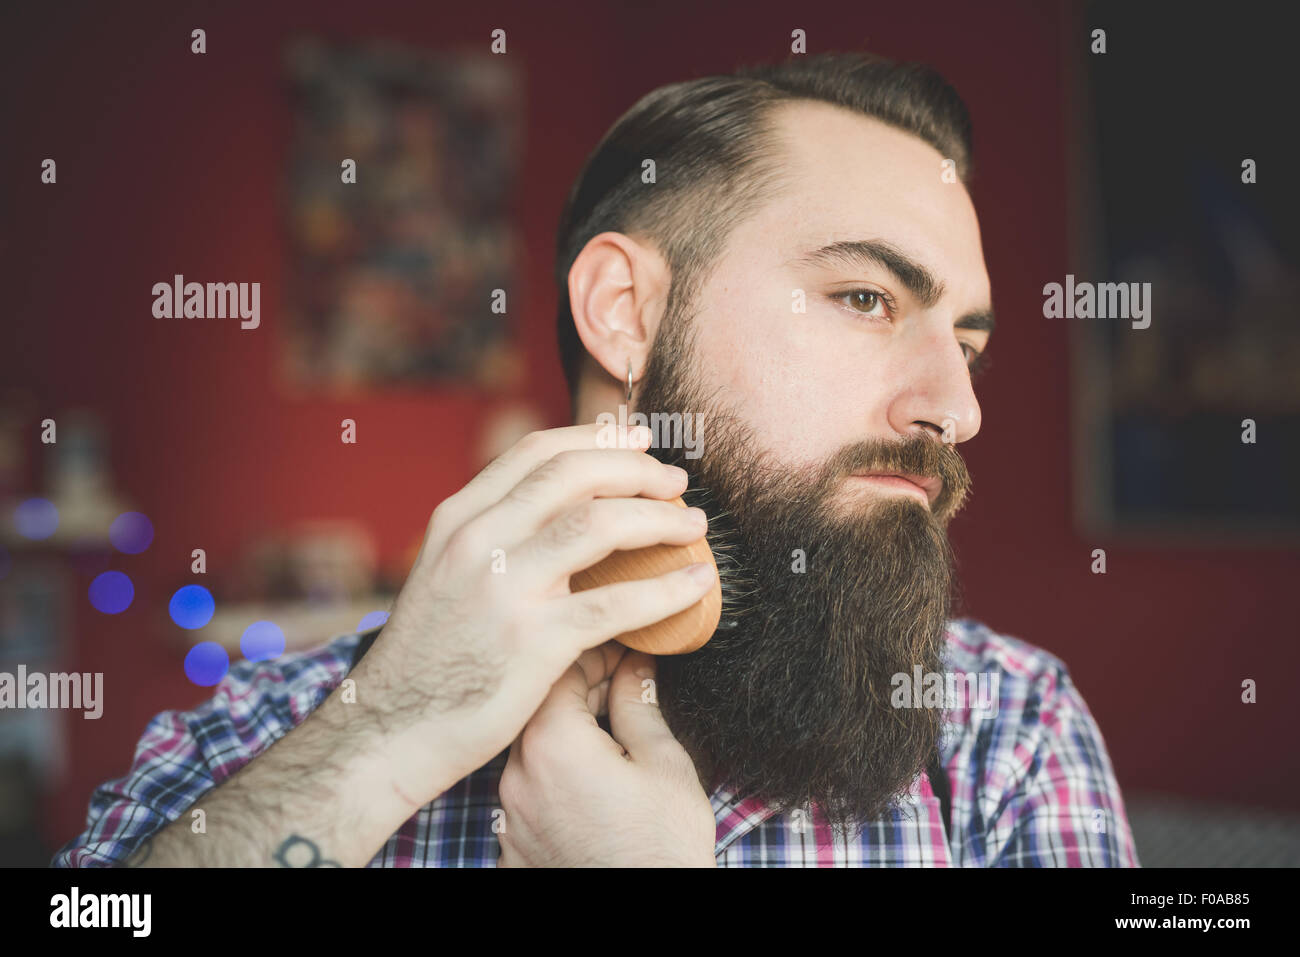 Jeune homme barbu, sa barbe de brossage Photo Stock